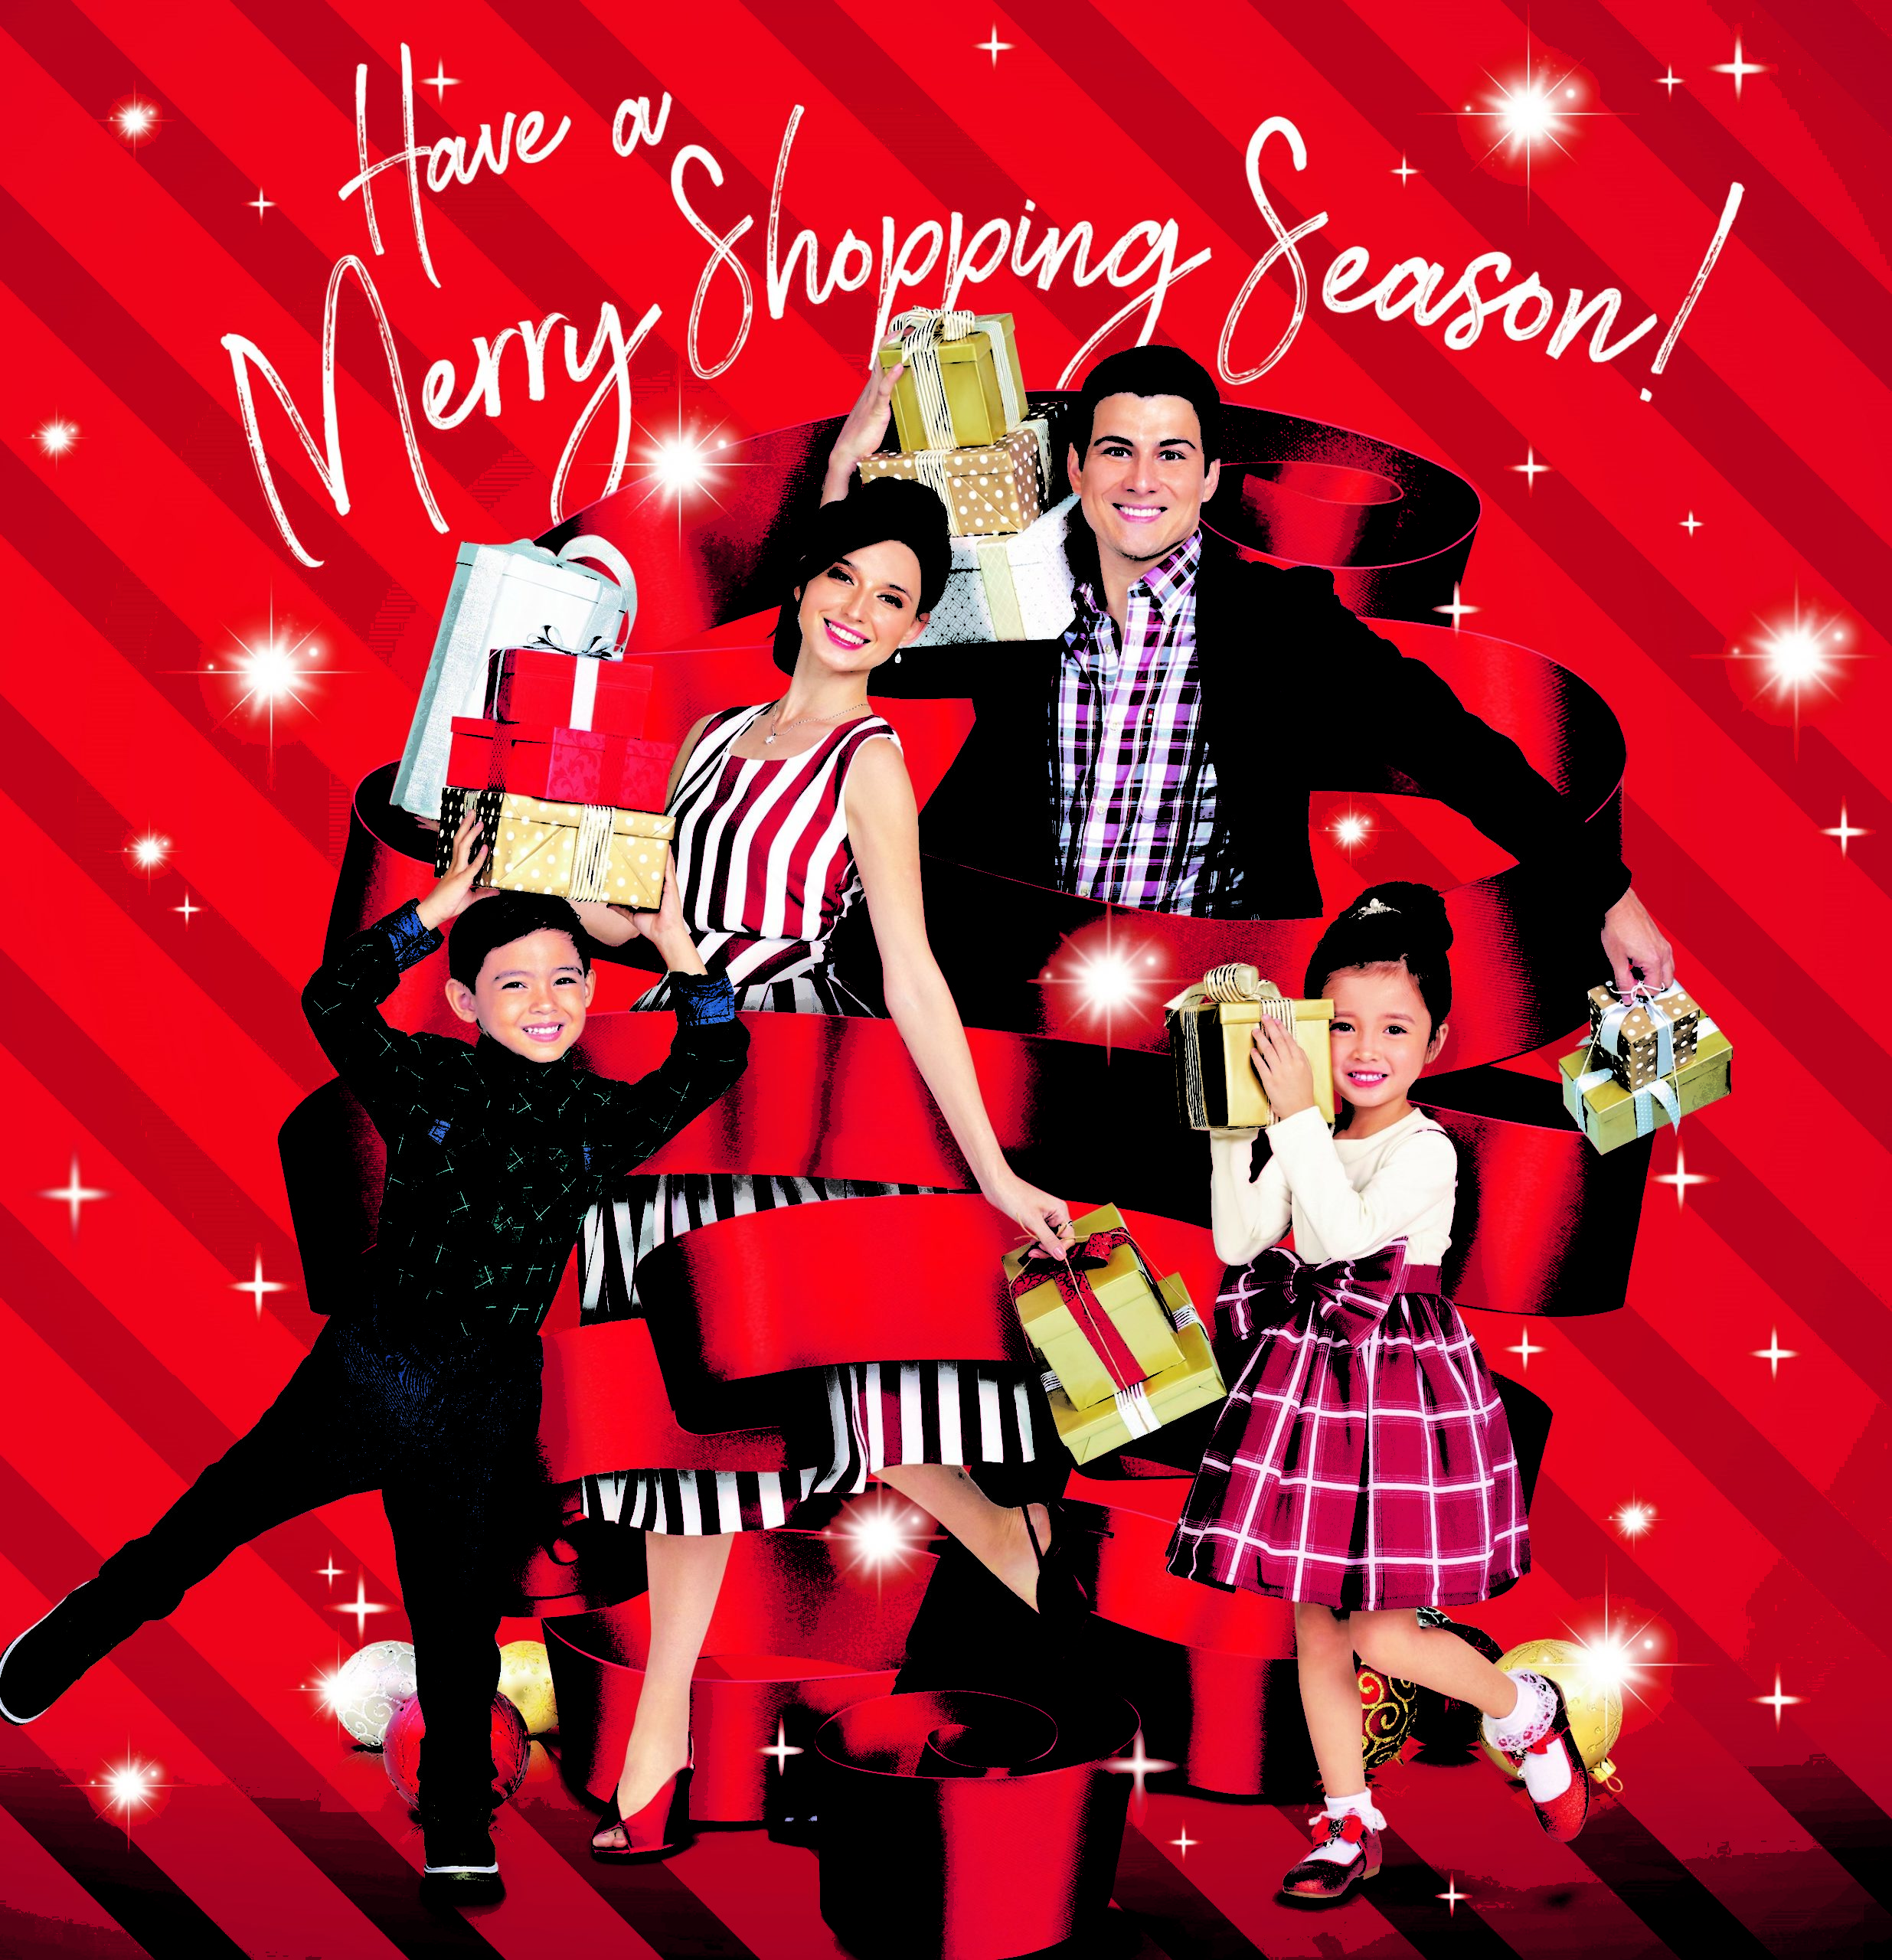 6 #SparklingSMallidays surprises this Christmas at SM